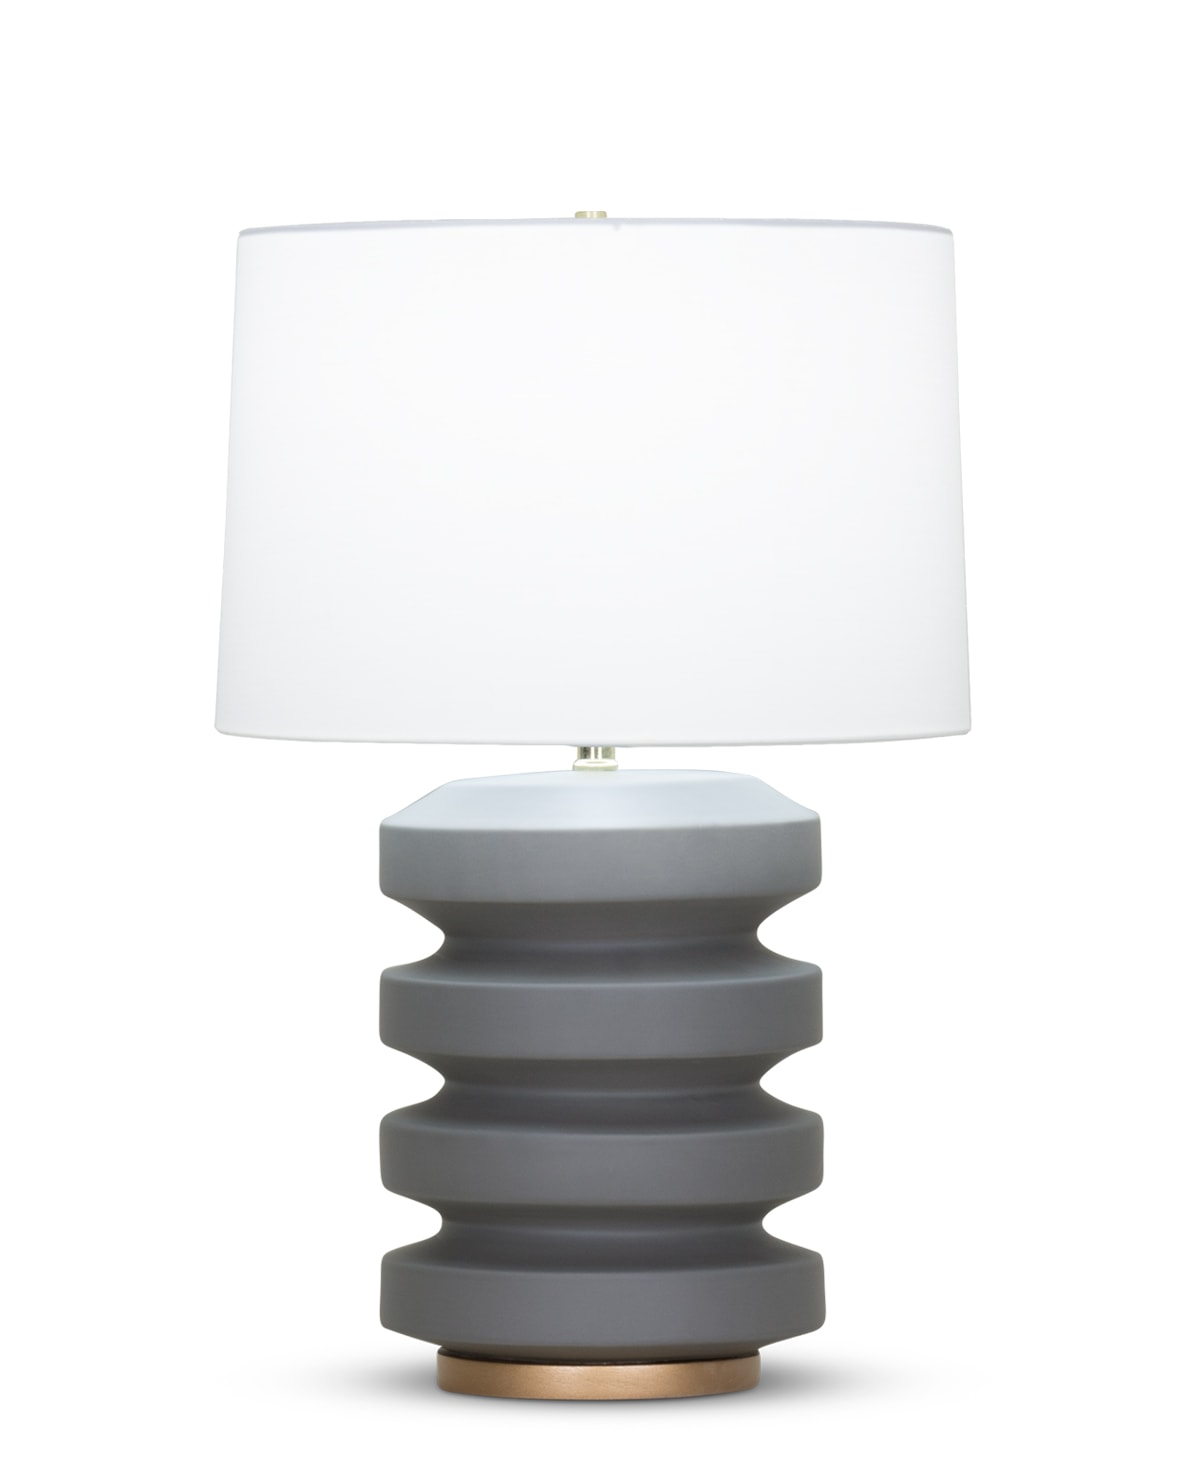 FlowDecor Orpheus Table Lamp in ceramic with charcoal grey matte finish and resin base with gold finish and off-white cotton tapered drum shade (# 4080)